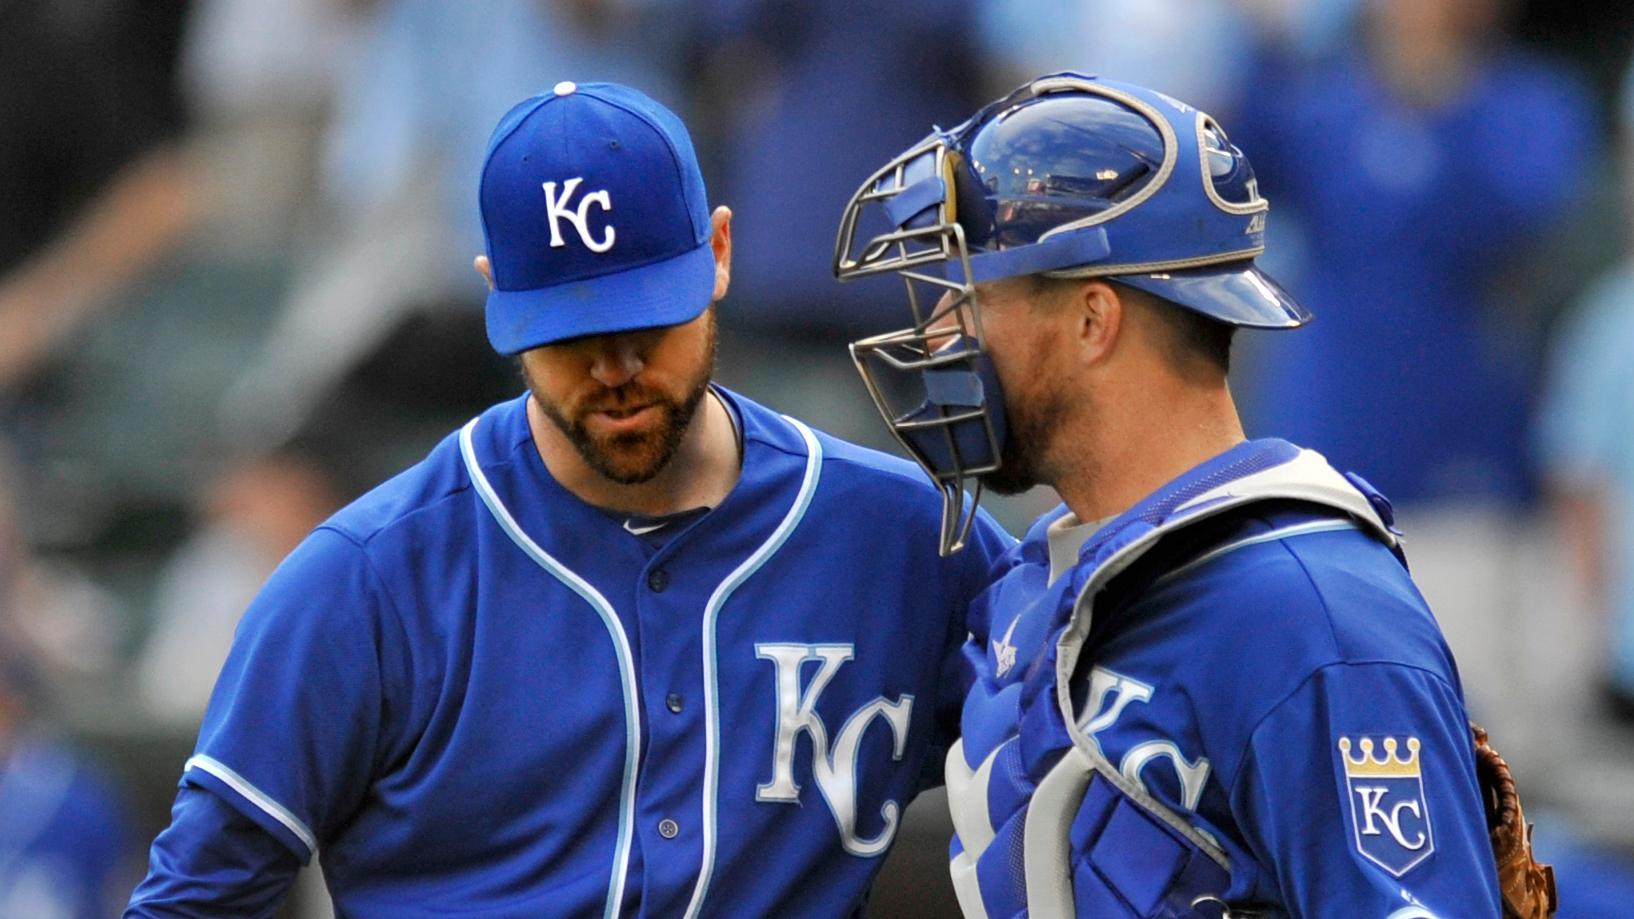 Video - Royals Rally To Top White Sox